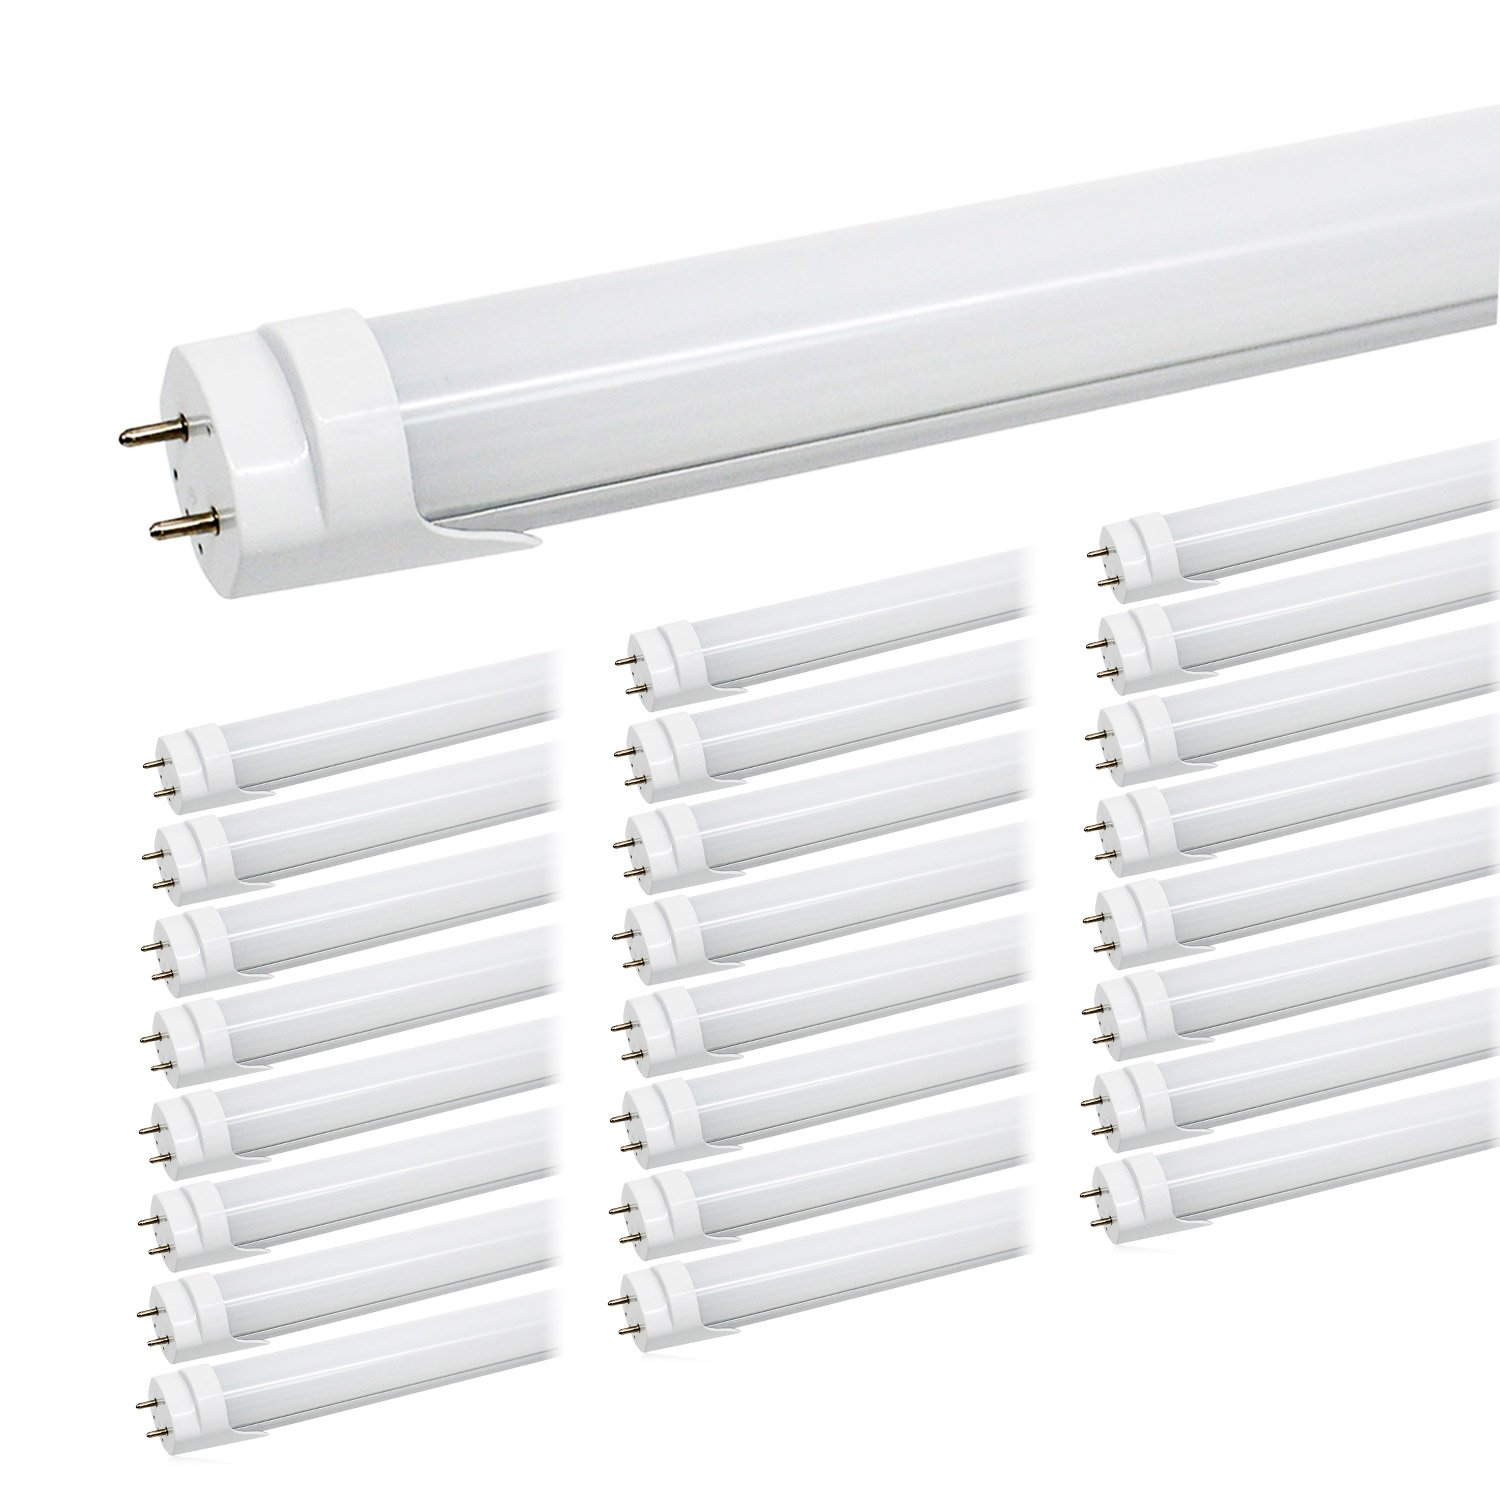 T8 4FT LED Light Tubes - 24W 5000K Daylight White, 3000LM, JESLED Dual Row T10 T12 Fluorescent Bulbs Replacement, Frosted, Dual-End Powered, Bypass Ballast, Garage Warehouse Shop Lights (25-Pack)